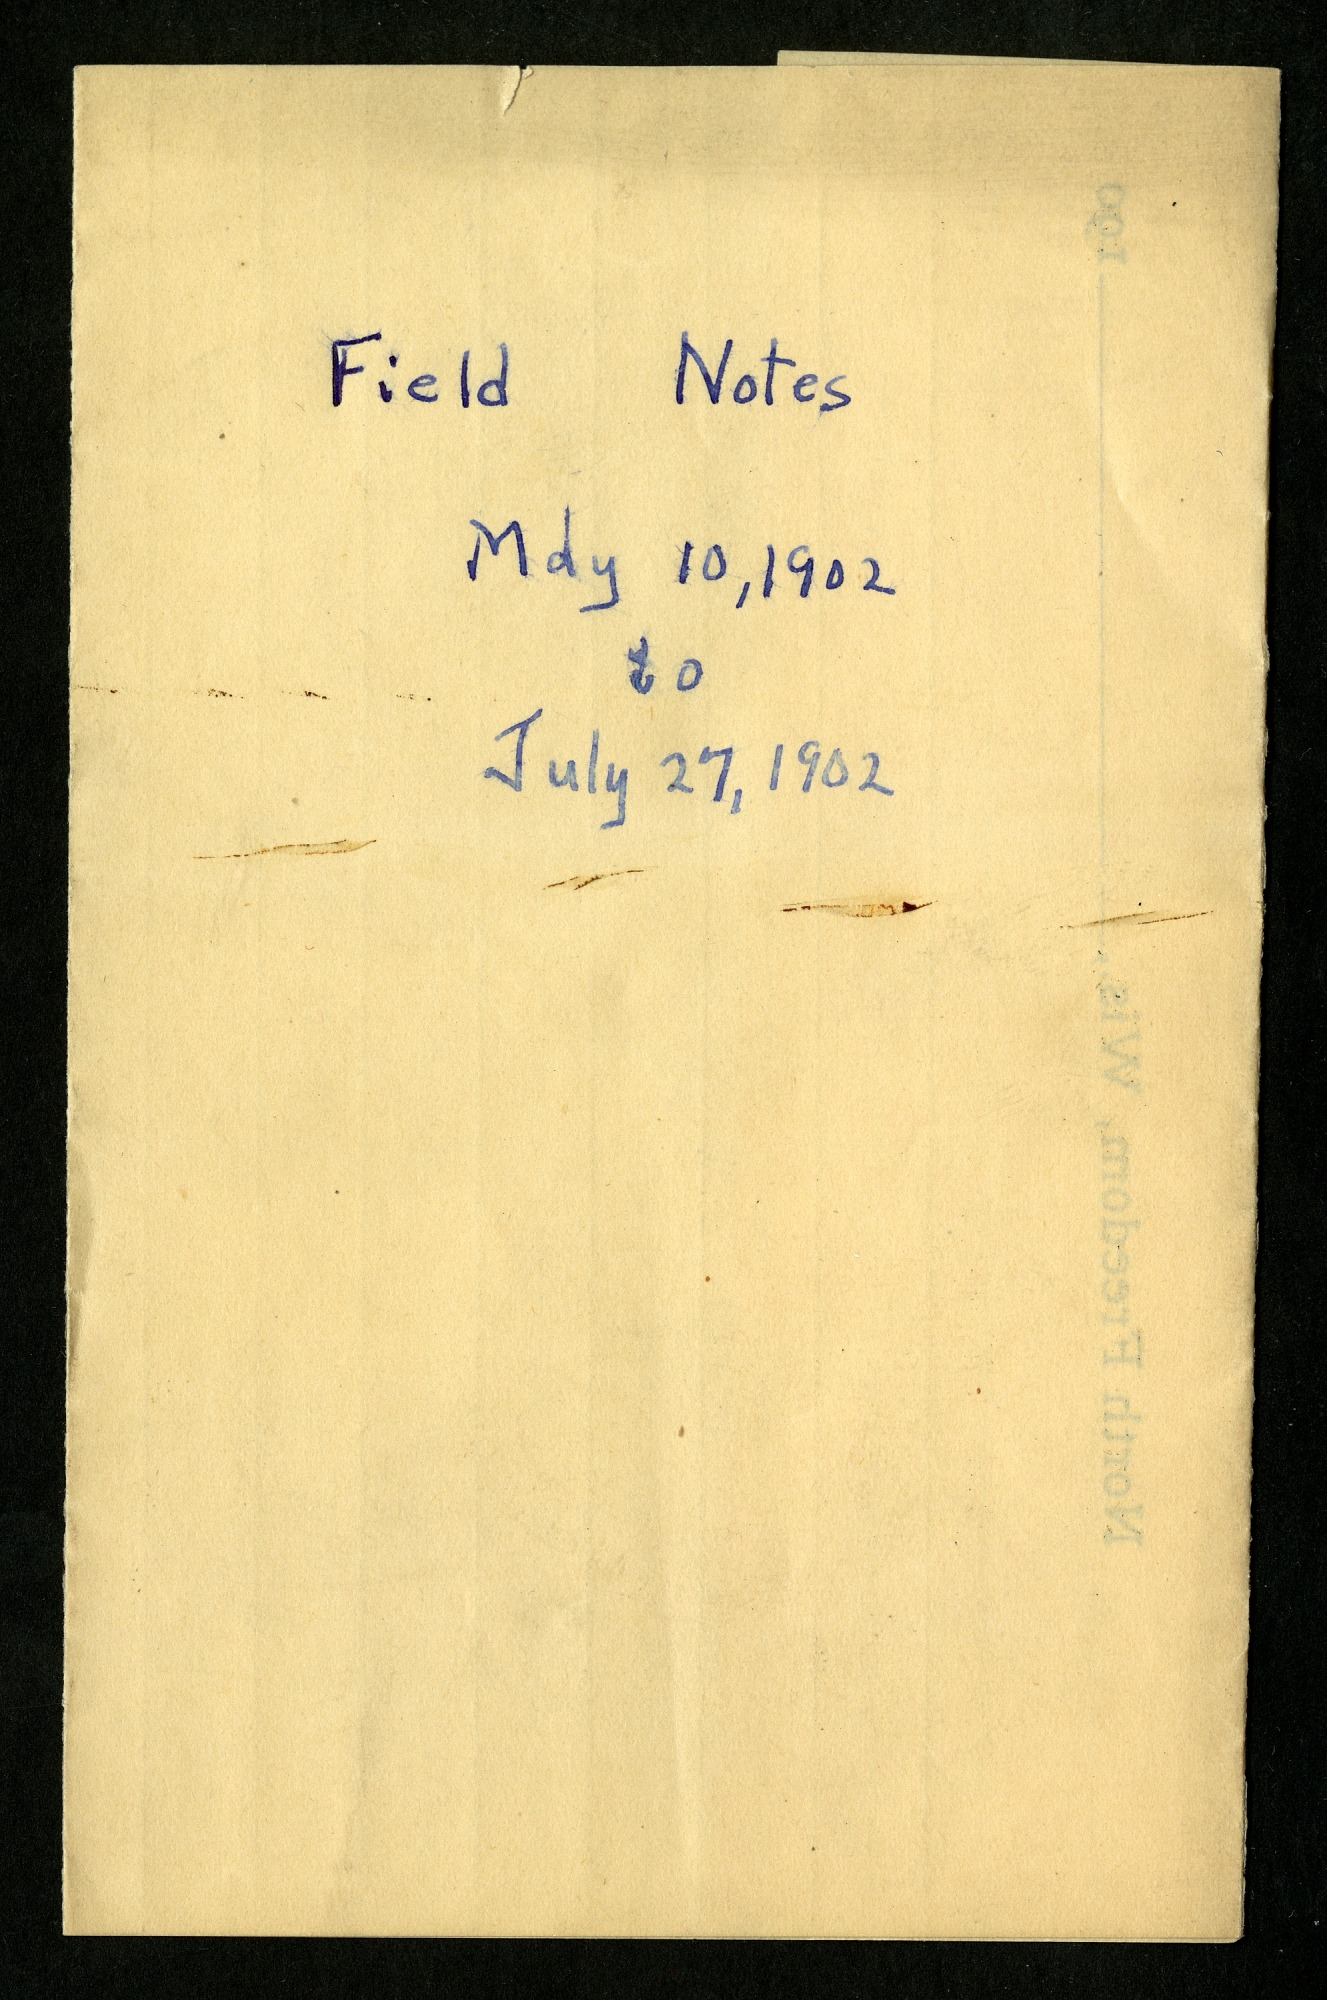 Field notes, May 1902 - December 1904 : mostly bird observations made in and around North Freedom, Wisconsin, notes for November 27 - December 1, 1904 were taken at Independence, Kansas